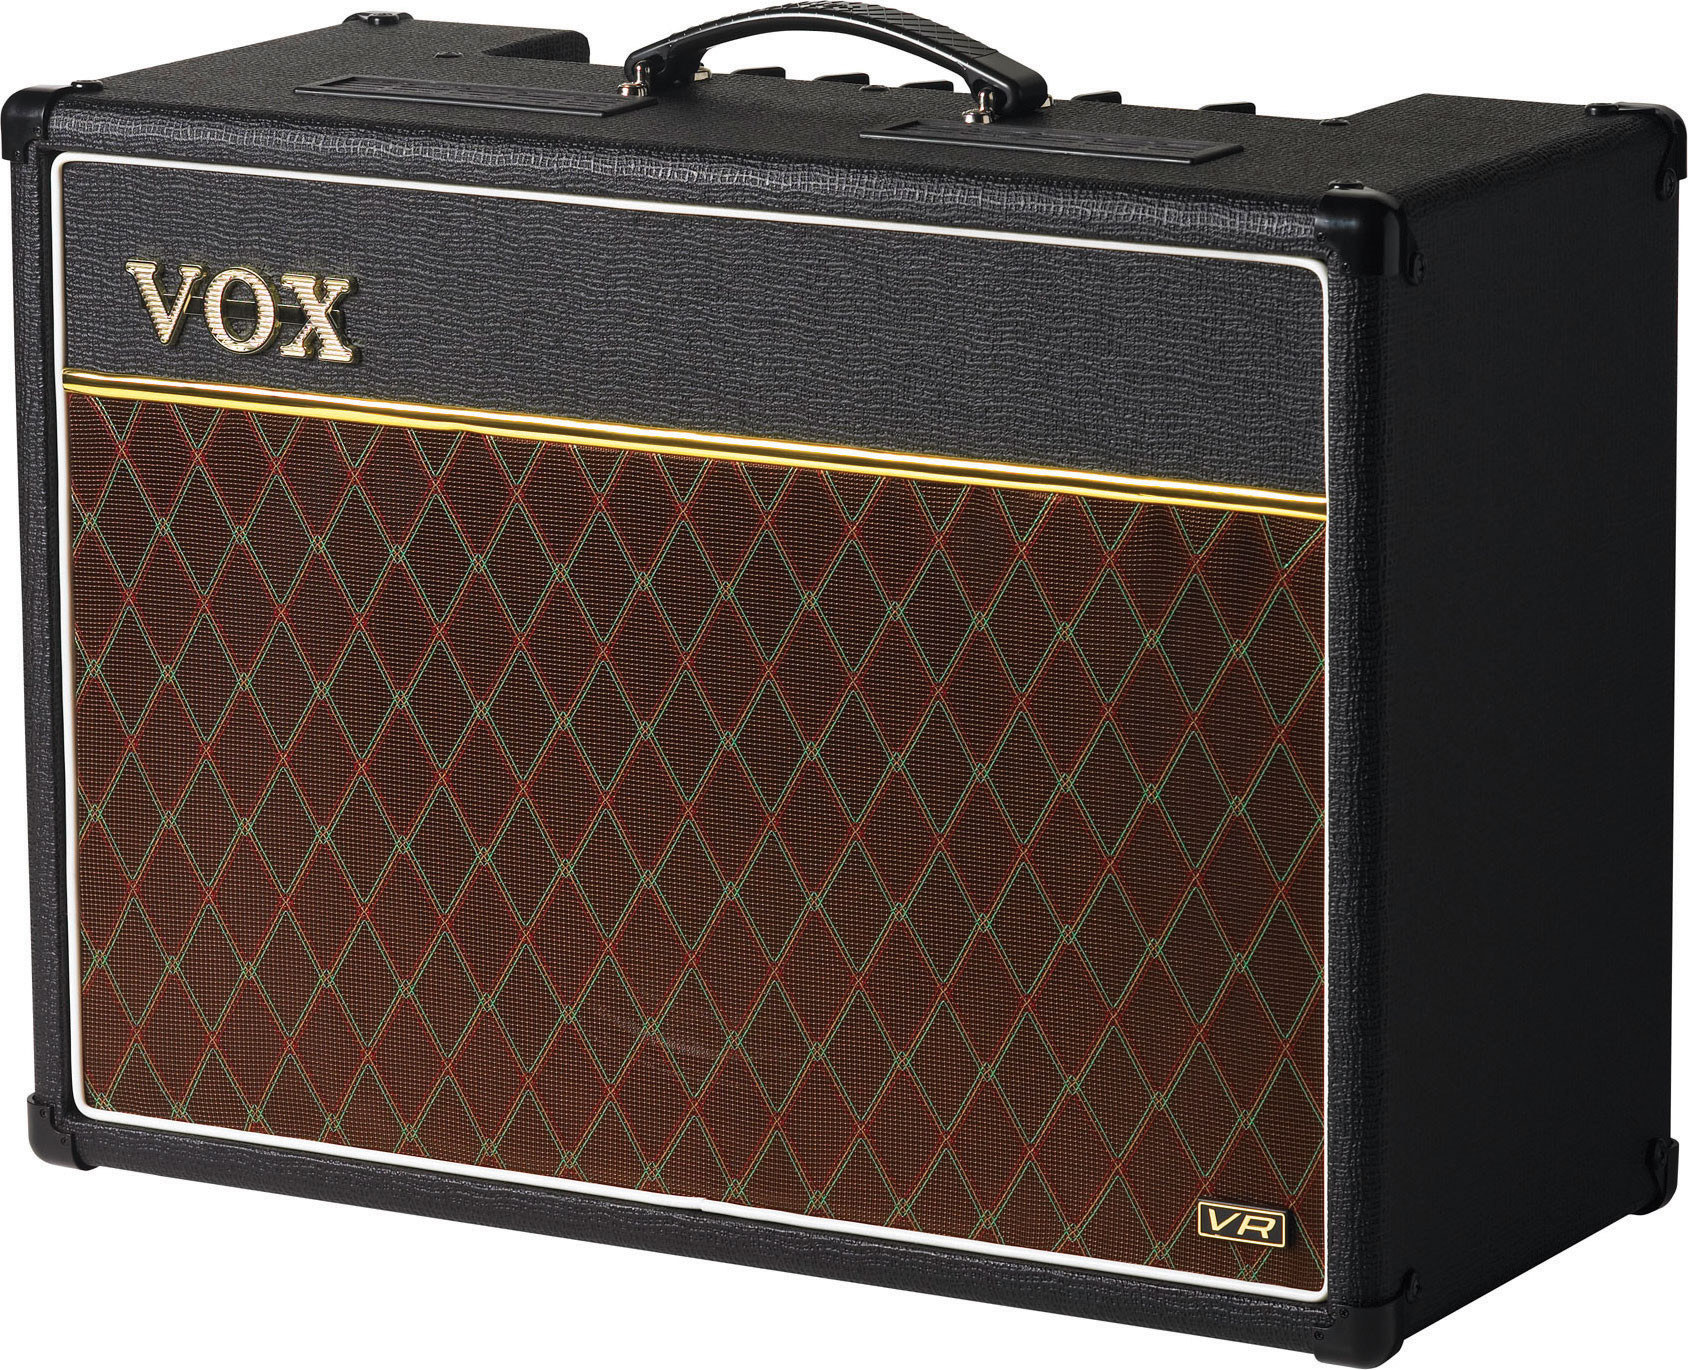 vox ac15vr 15 watt combo guitar amplifier. Black Bedroom Furniture Sets. Home Design Ideas